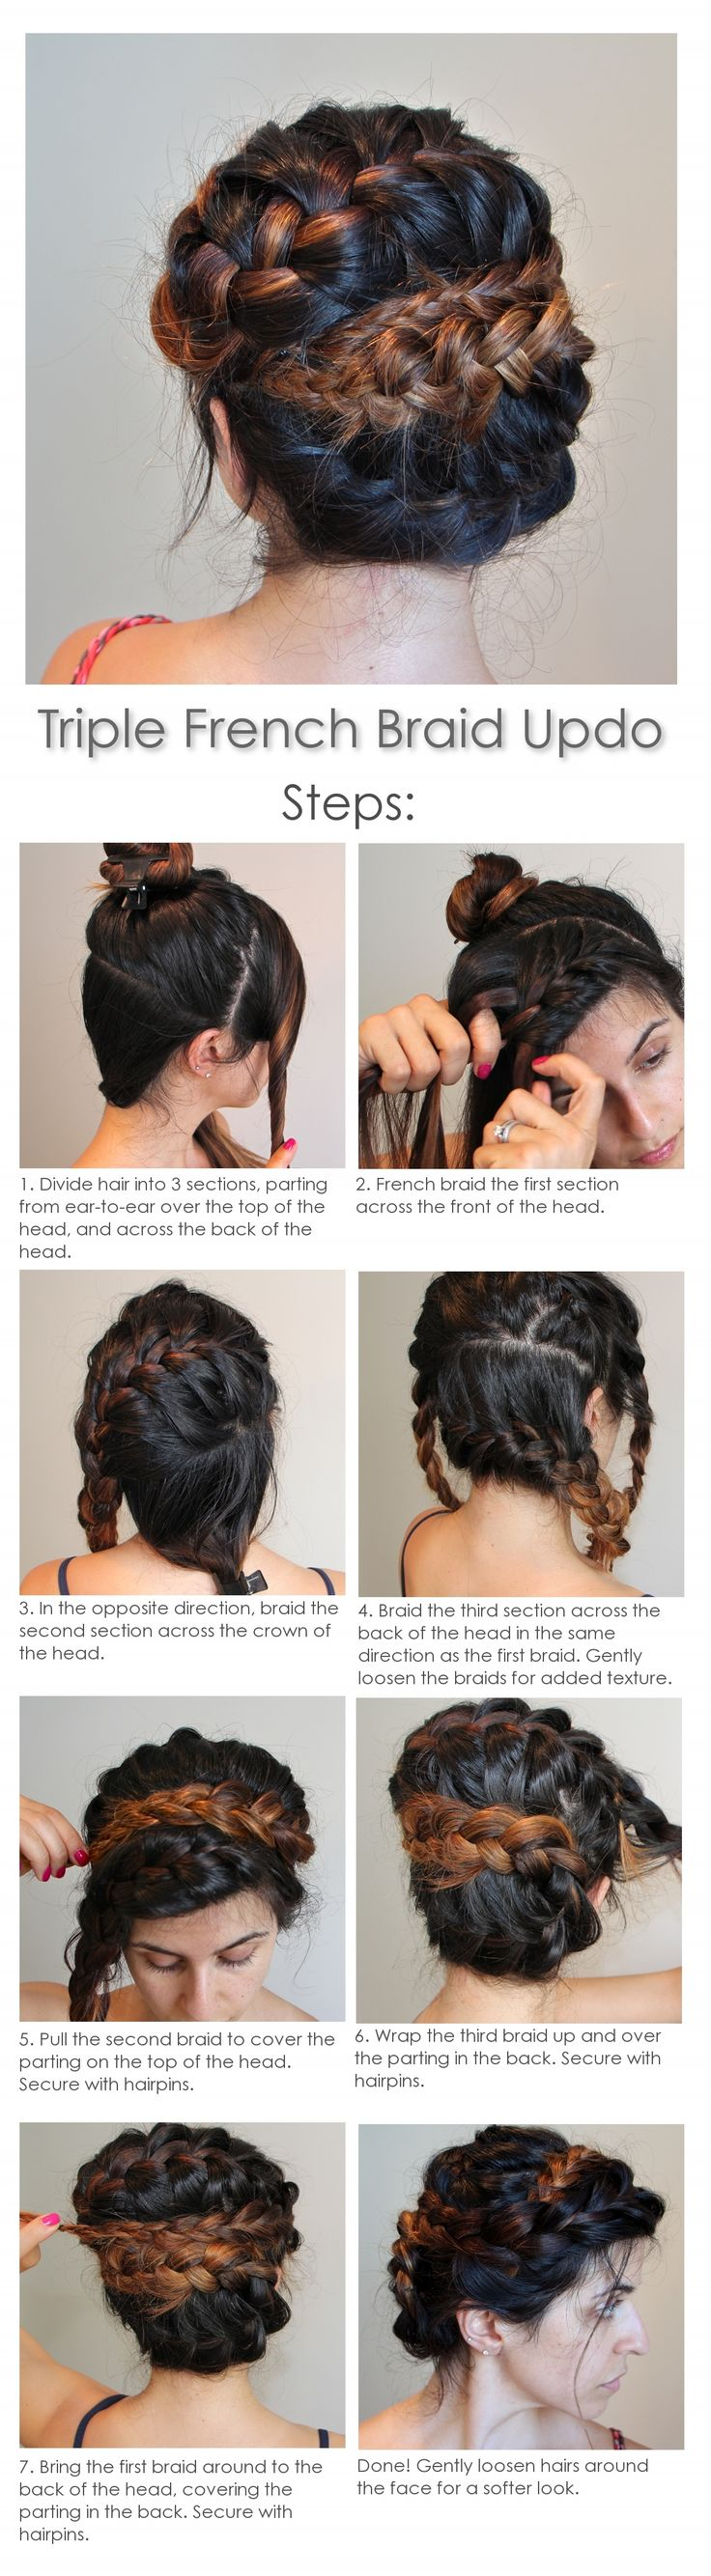 Easy braided updo, 10 minute hair style, summer hair styles, french braid tutorial. Need to try